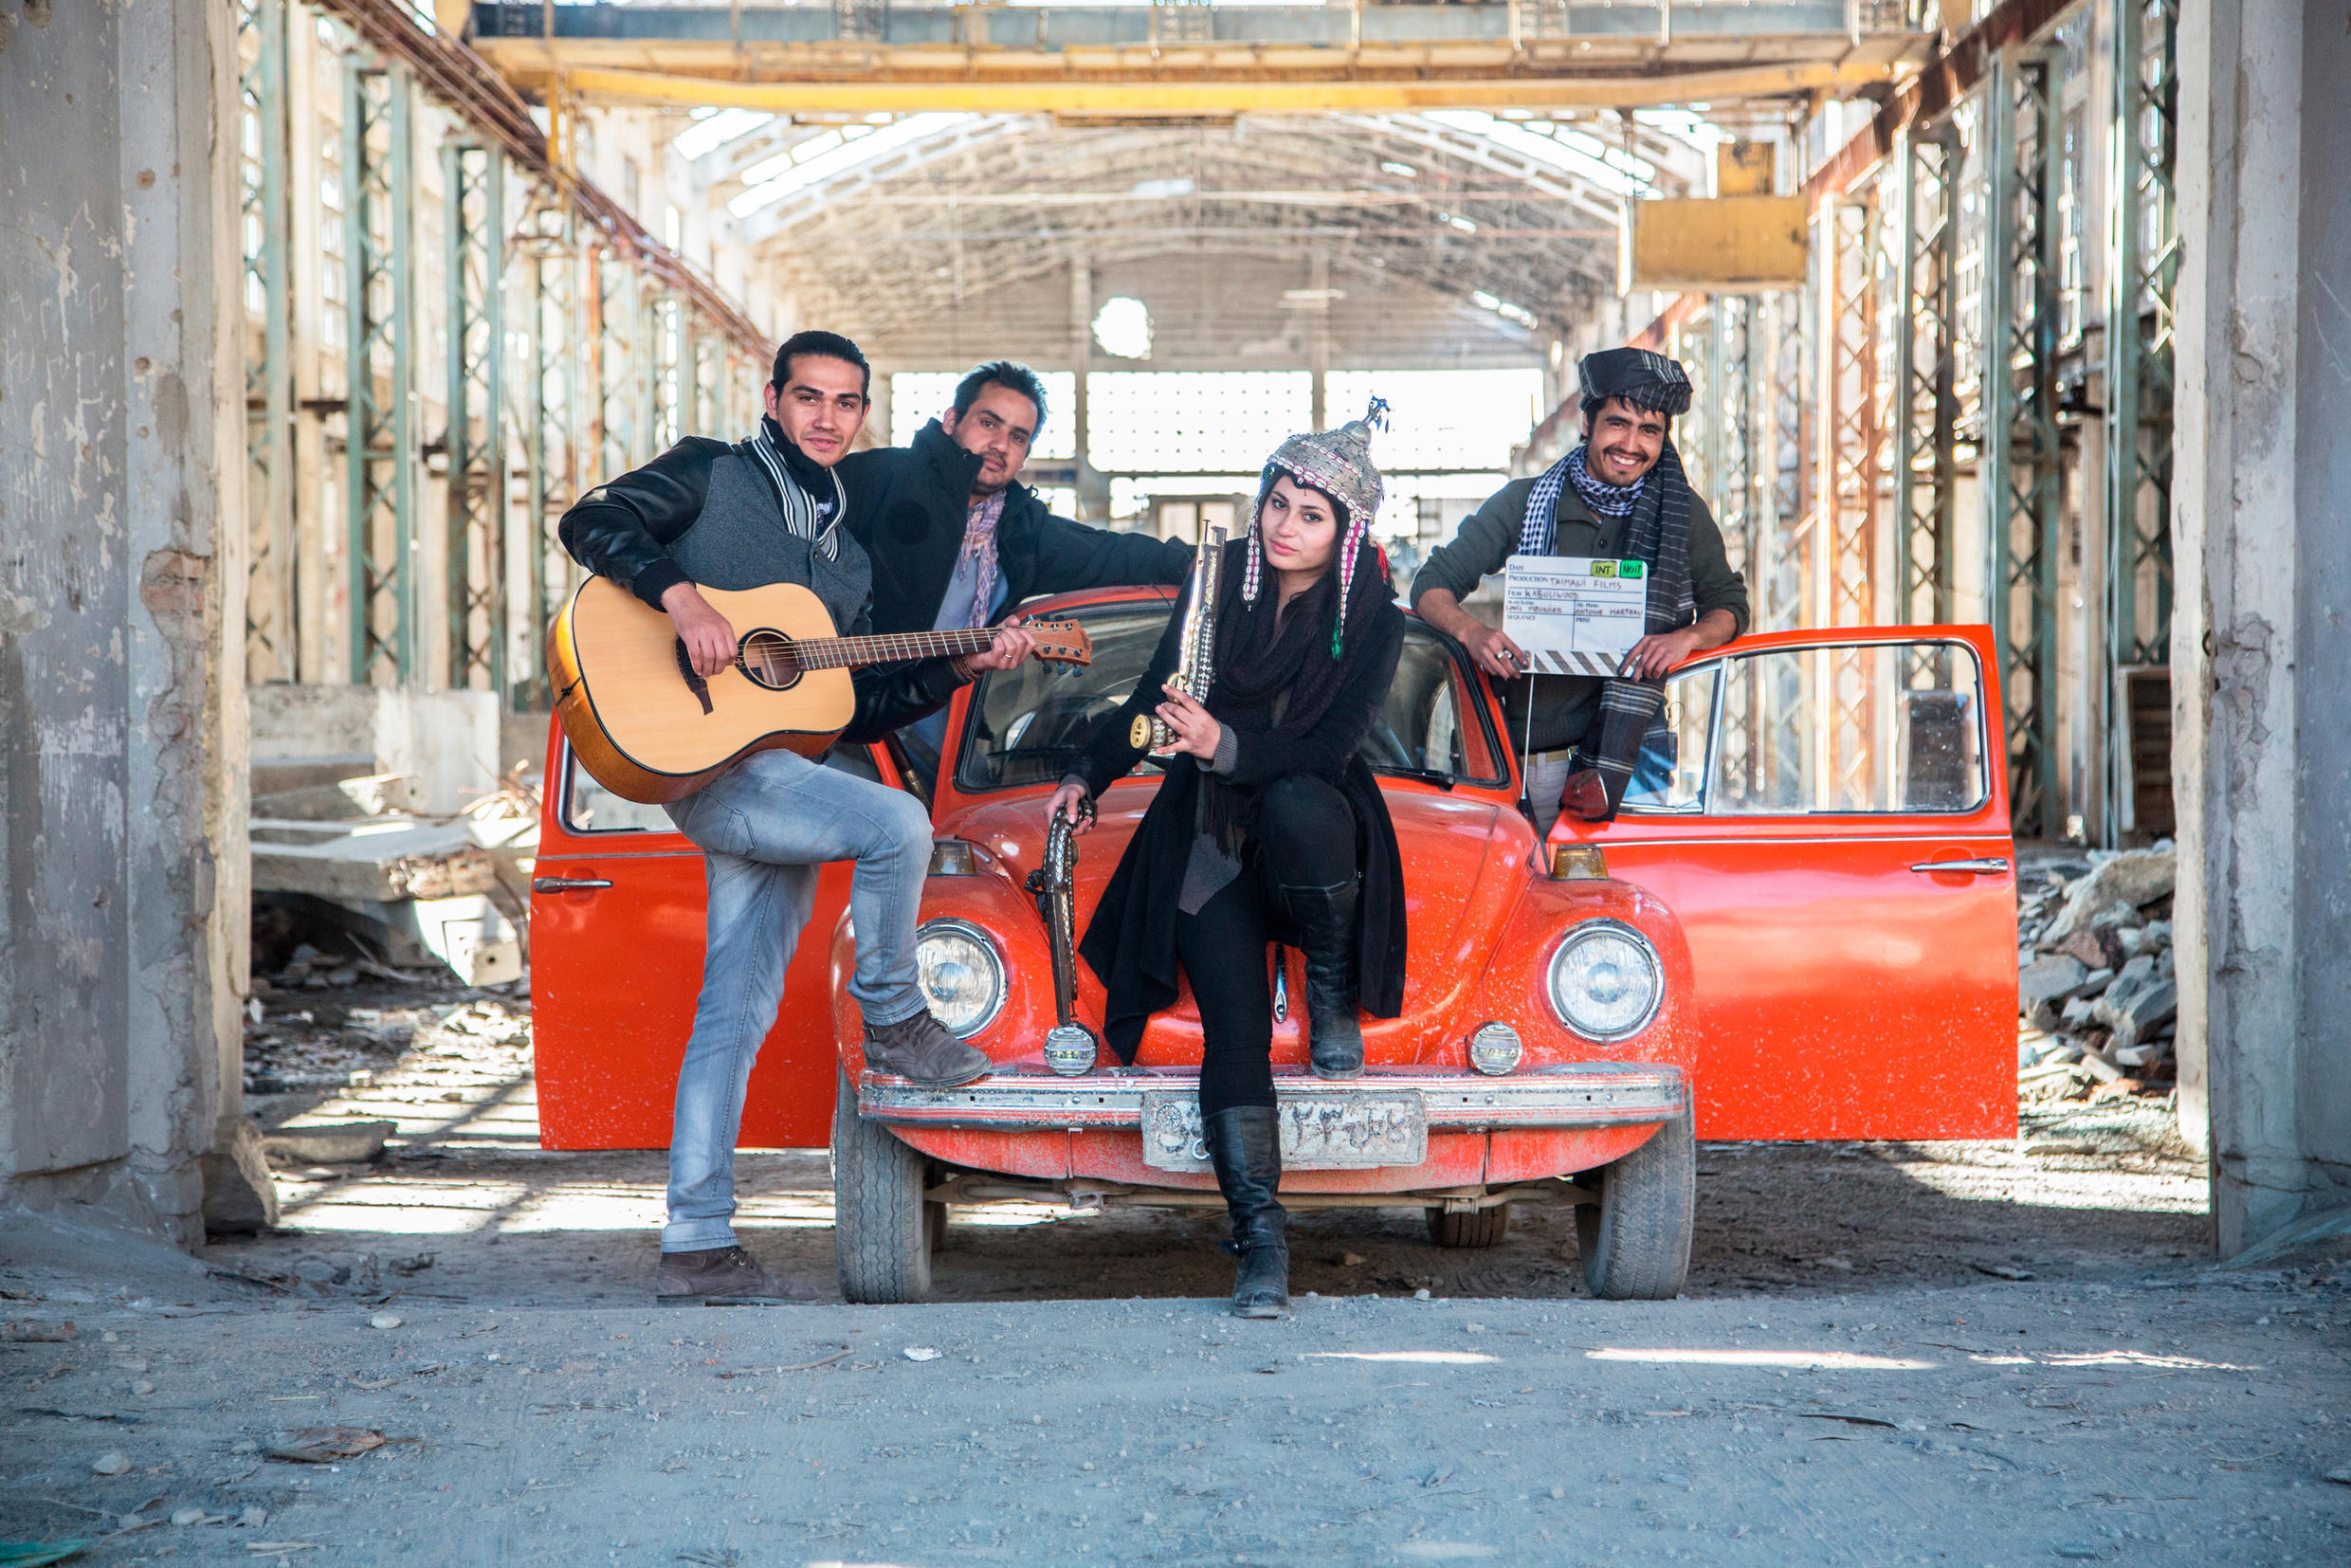 Kabullywood, a Franco-Afghan film released in France on 6 February 2019